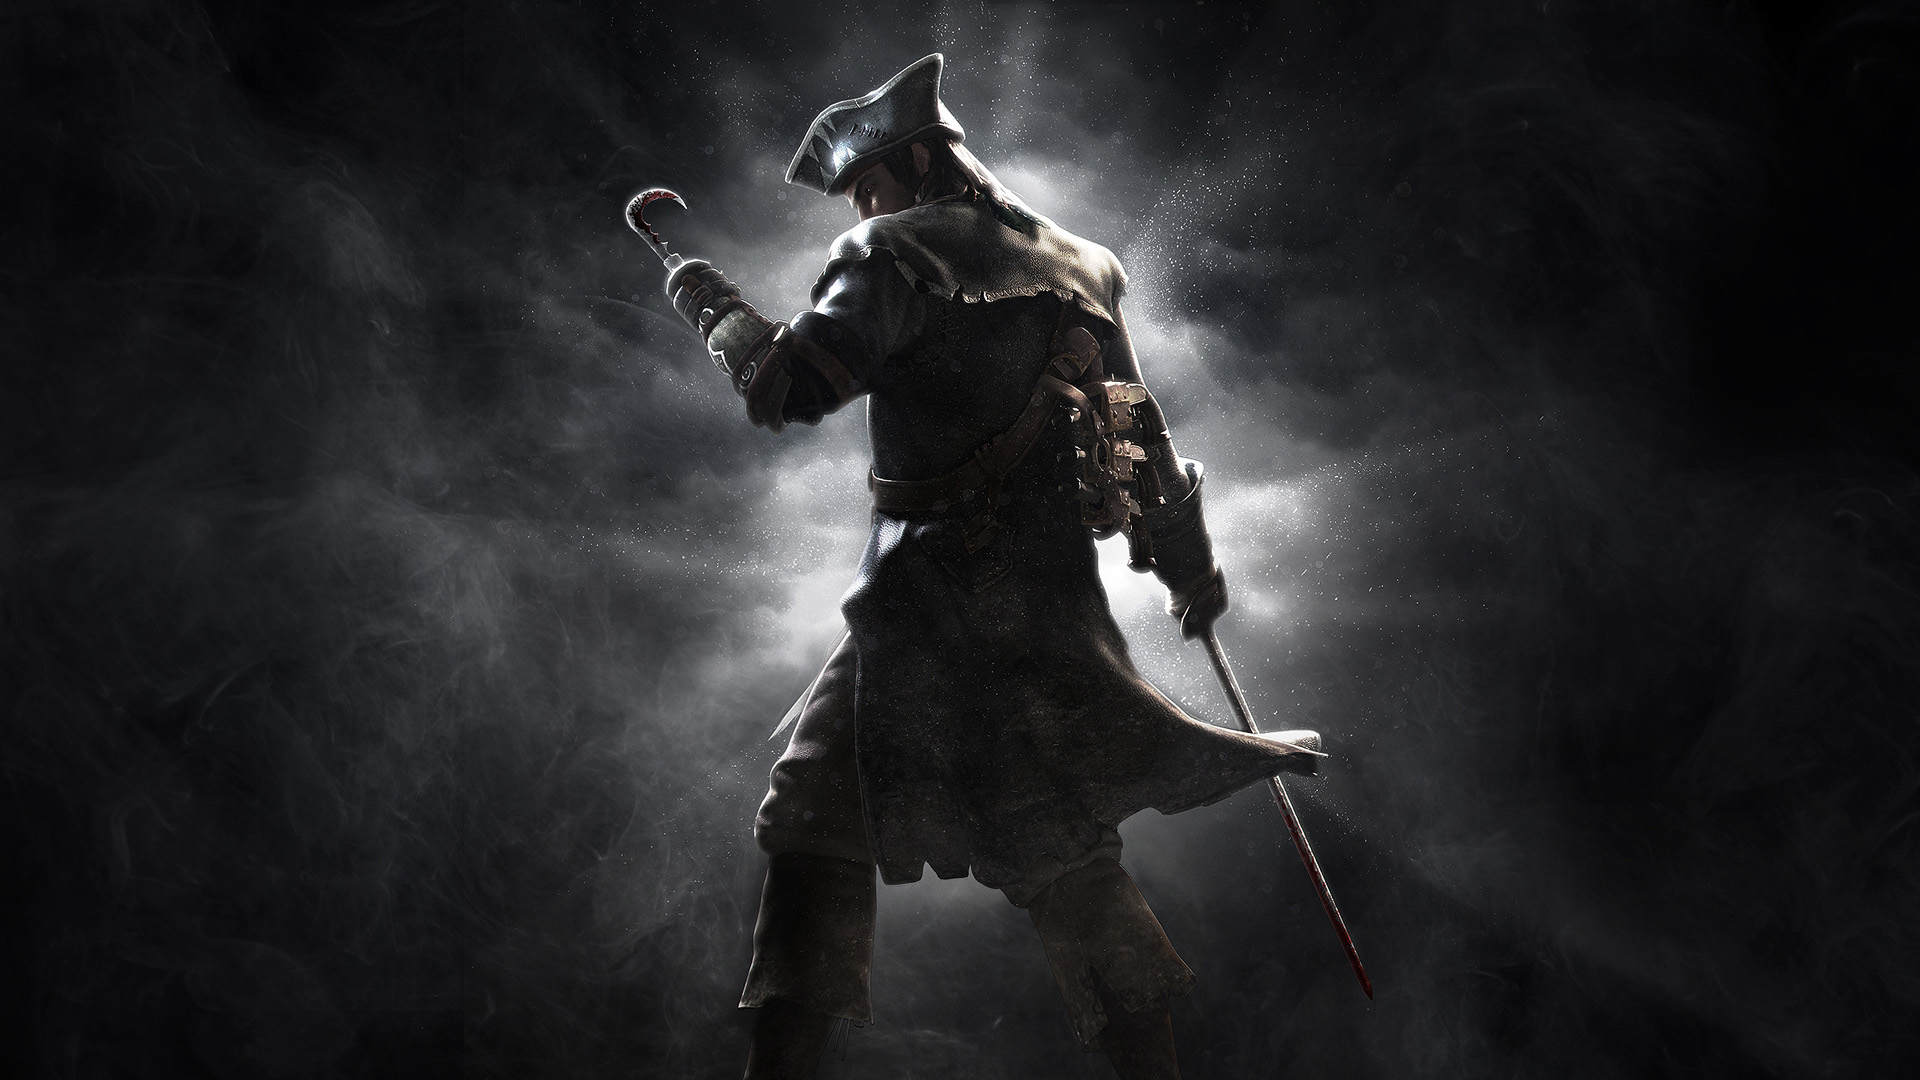 Pirate Wallpapers Images Is Cool Wallpapers